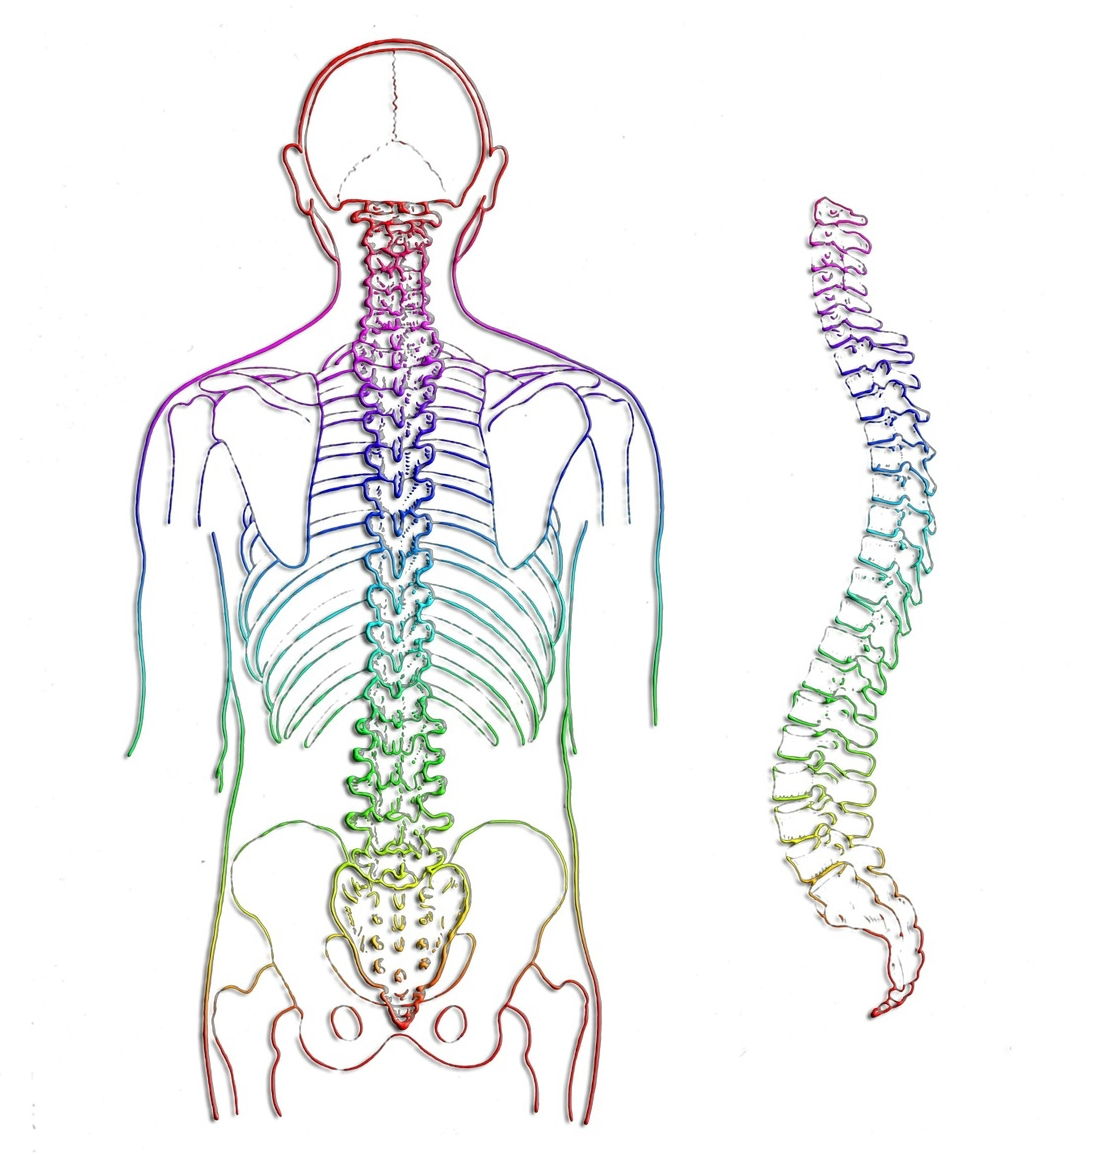 Scoliosis lower back pain spinal stenosis